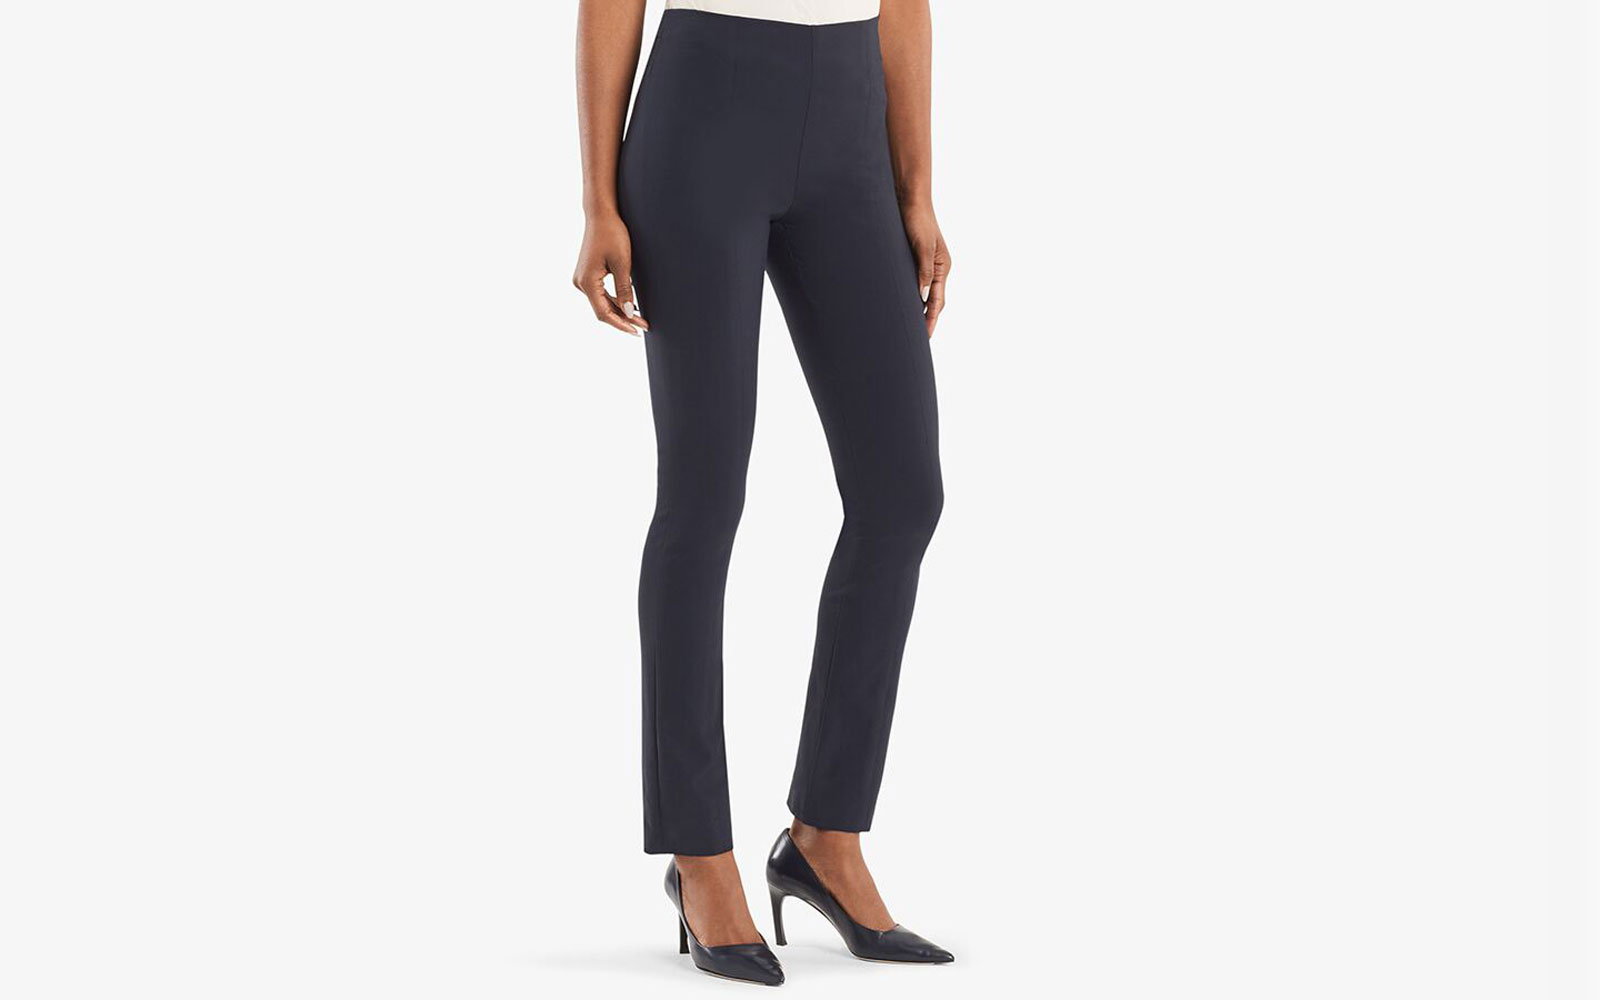 Woman wearing navy ankle length work pants